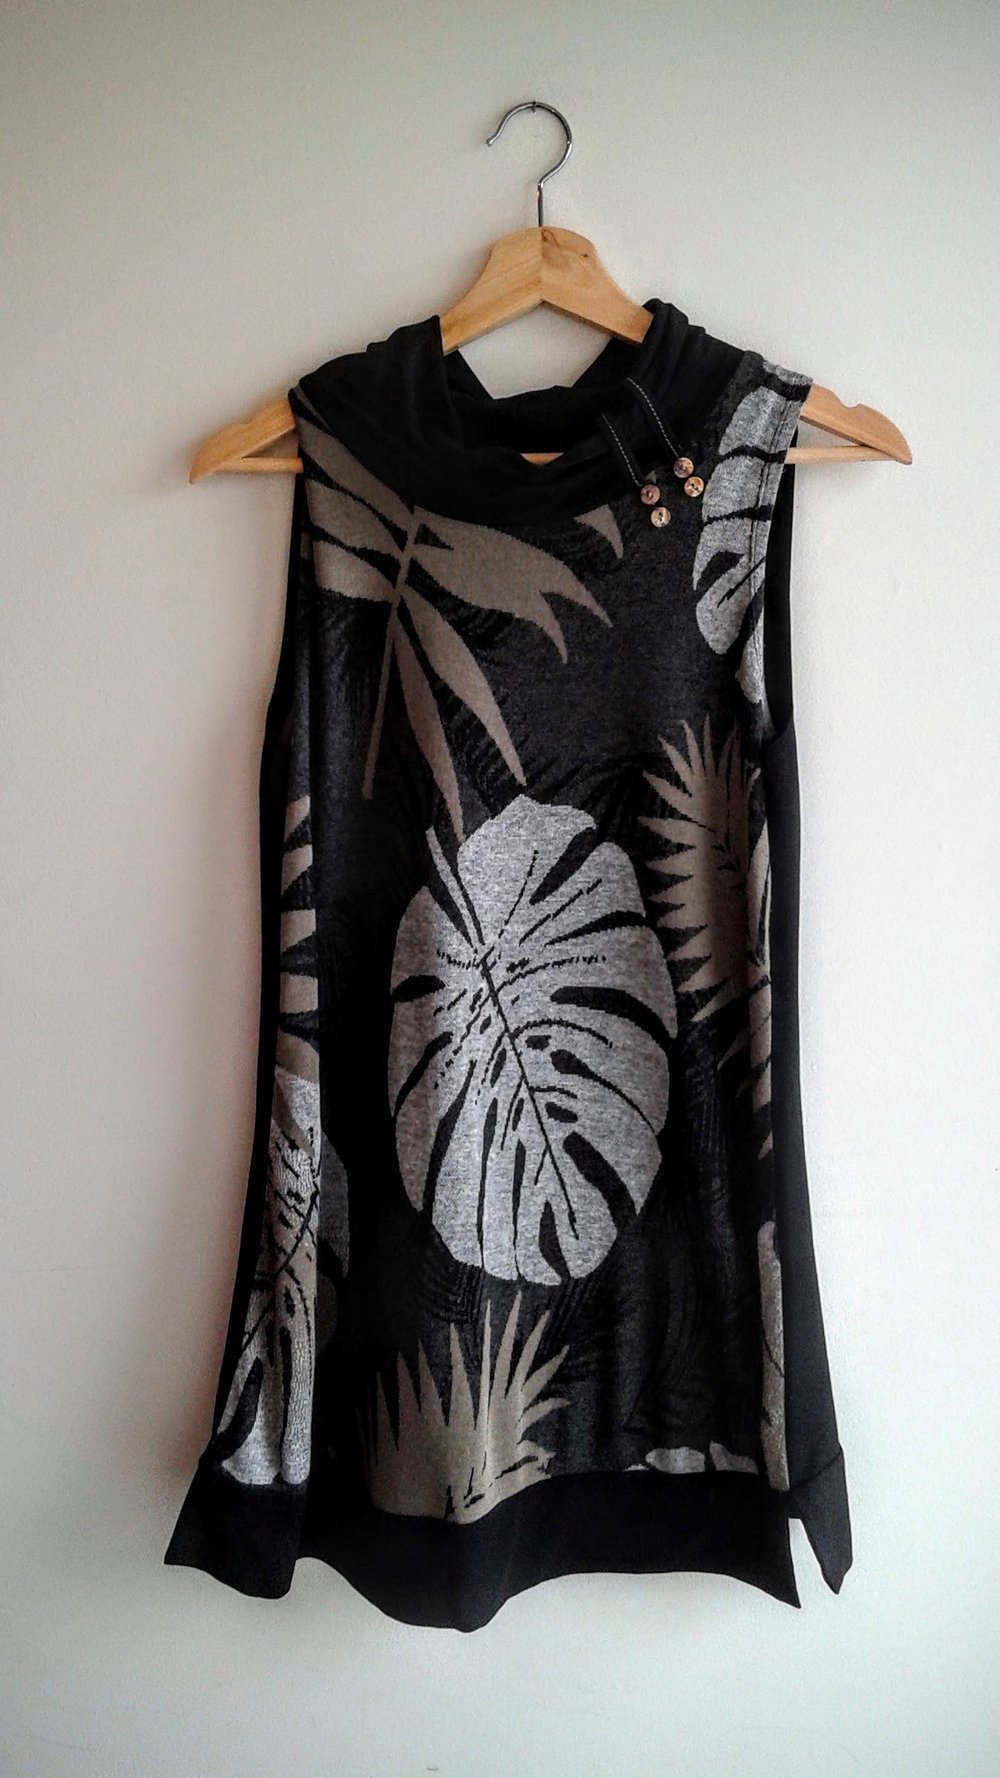 Philodendron tunic; Size S, $22